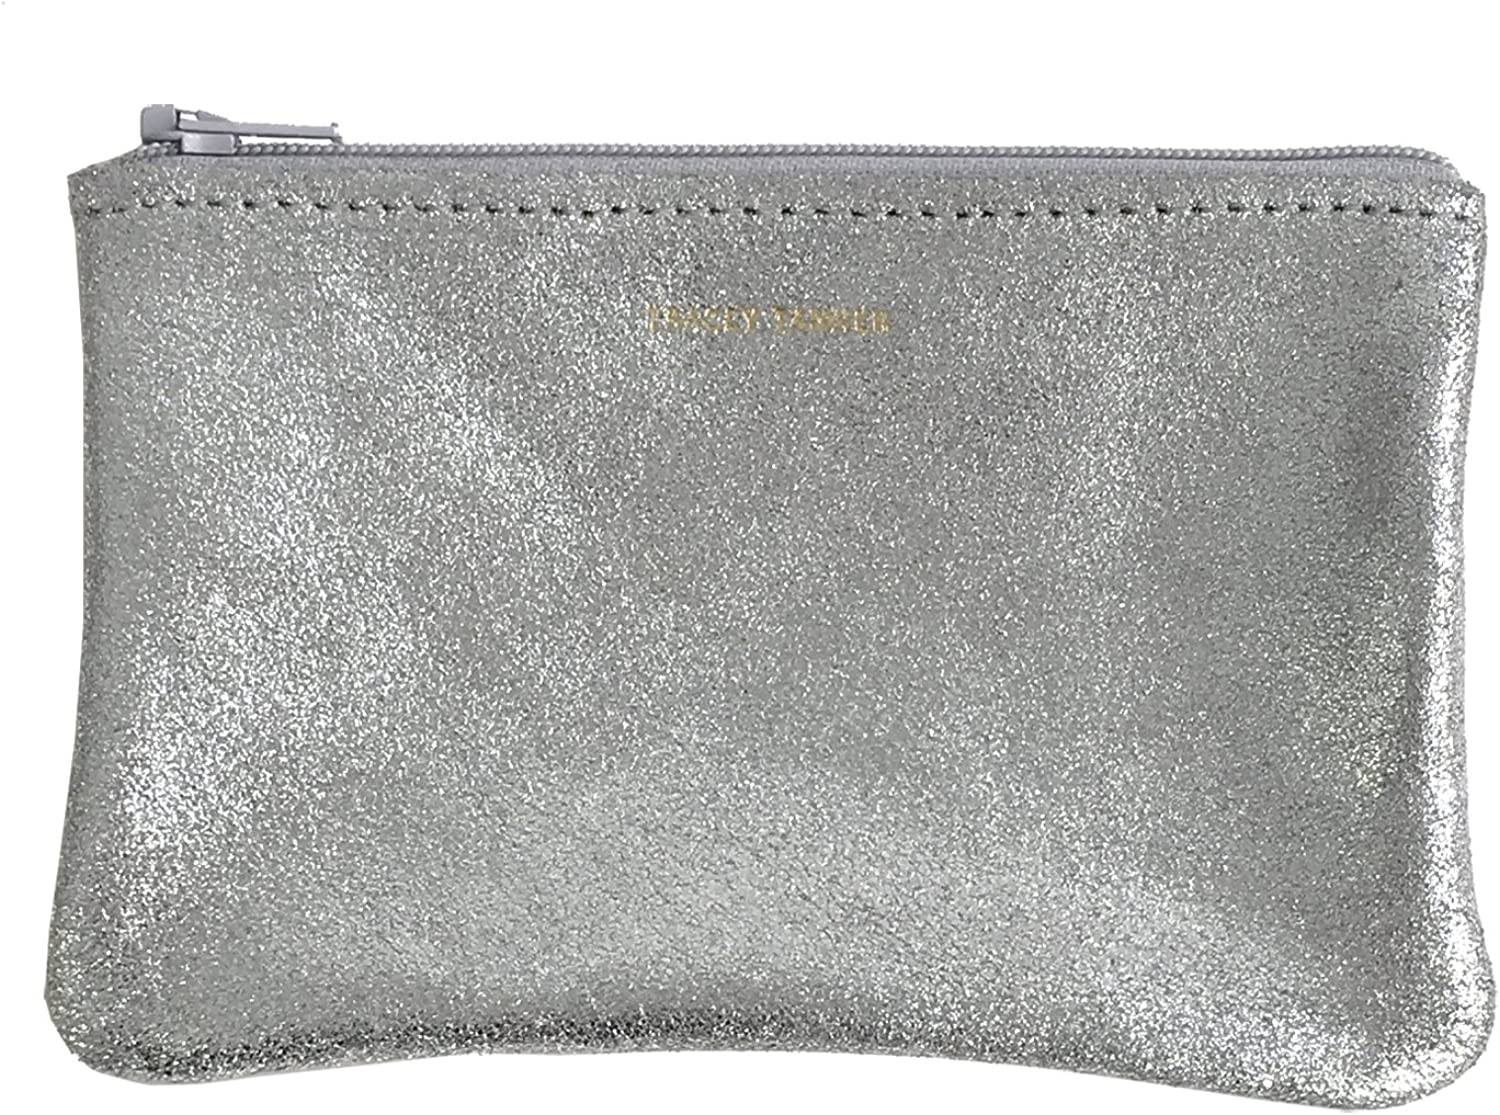 Tracey Tanner Zipper Top Pouch  Frost Sparkle